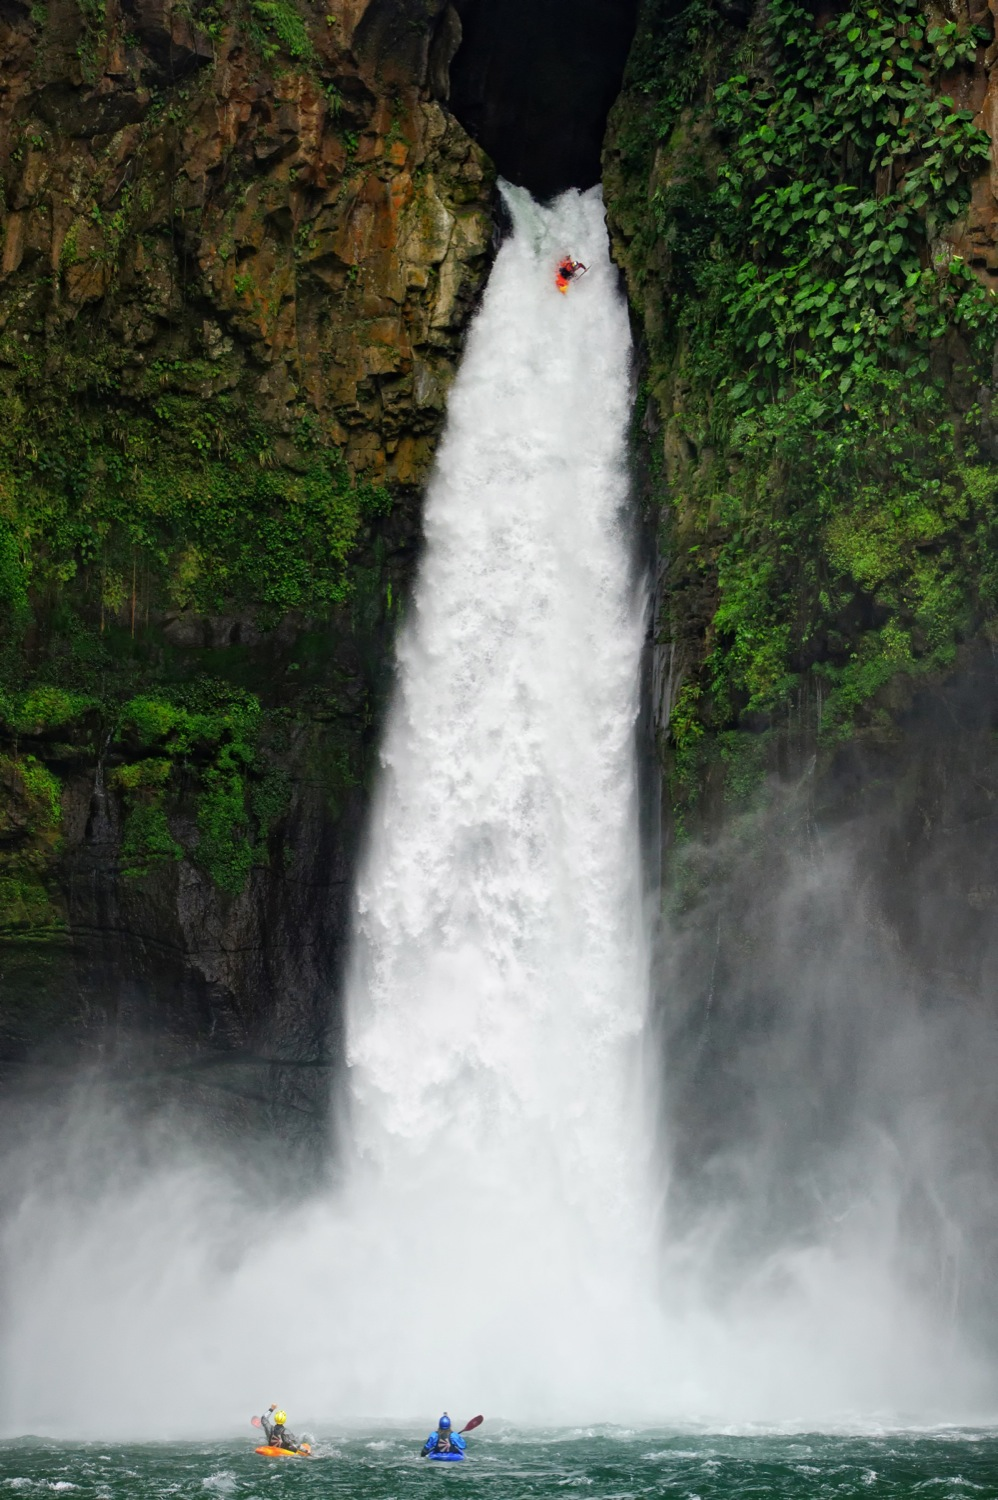 Red Bull Athlete Rafa Ortiz drops the 128.6 foot tall Big Banana Waterfall on the Rio Alseseca in the Sierra  Madre Mountains in Veracruz, Mexico. This was the first descent of the monster waterfall. Ortiz ran the waterfall cleanly and came away unhurt except a badly blackened eye and 3 stitches.  The waterfall is called Big Banana due to the numerous banana plantations in the region.  ©Lucas Gilman 2010 - All Rights Reserved p: +1 303-218-0707 e: lucas@lucasgilman.com